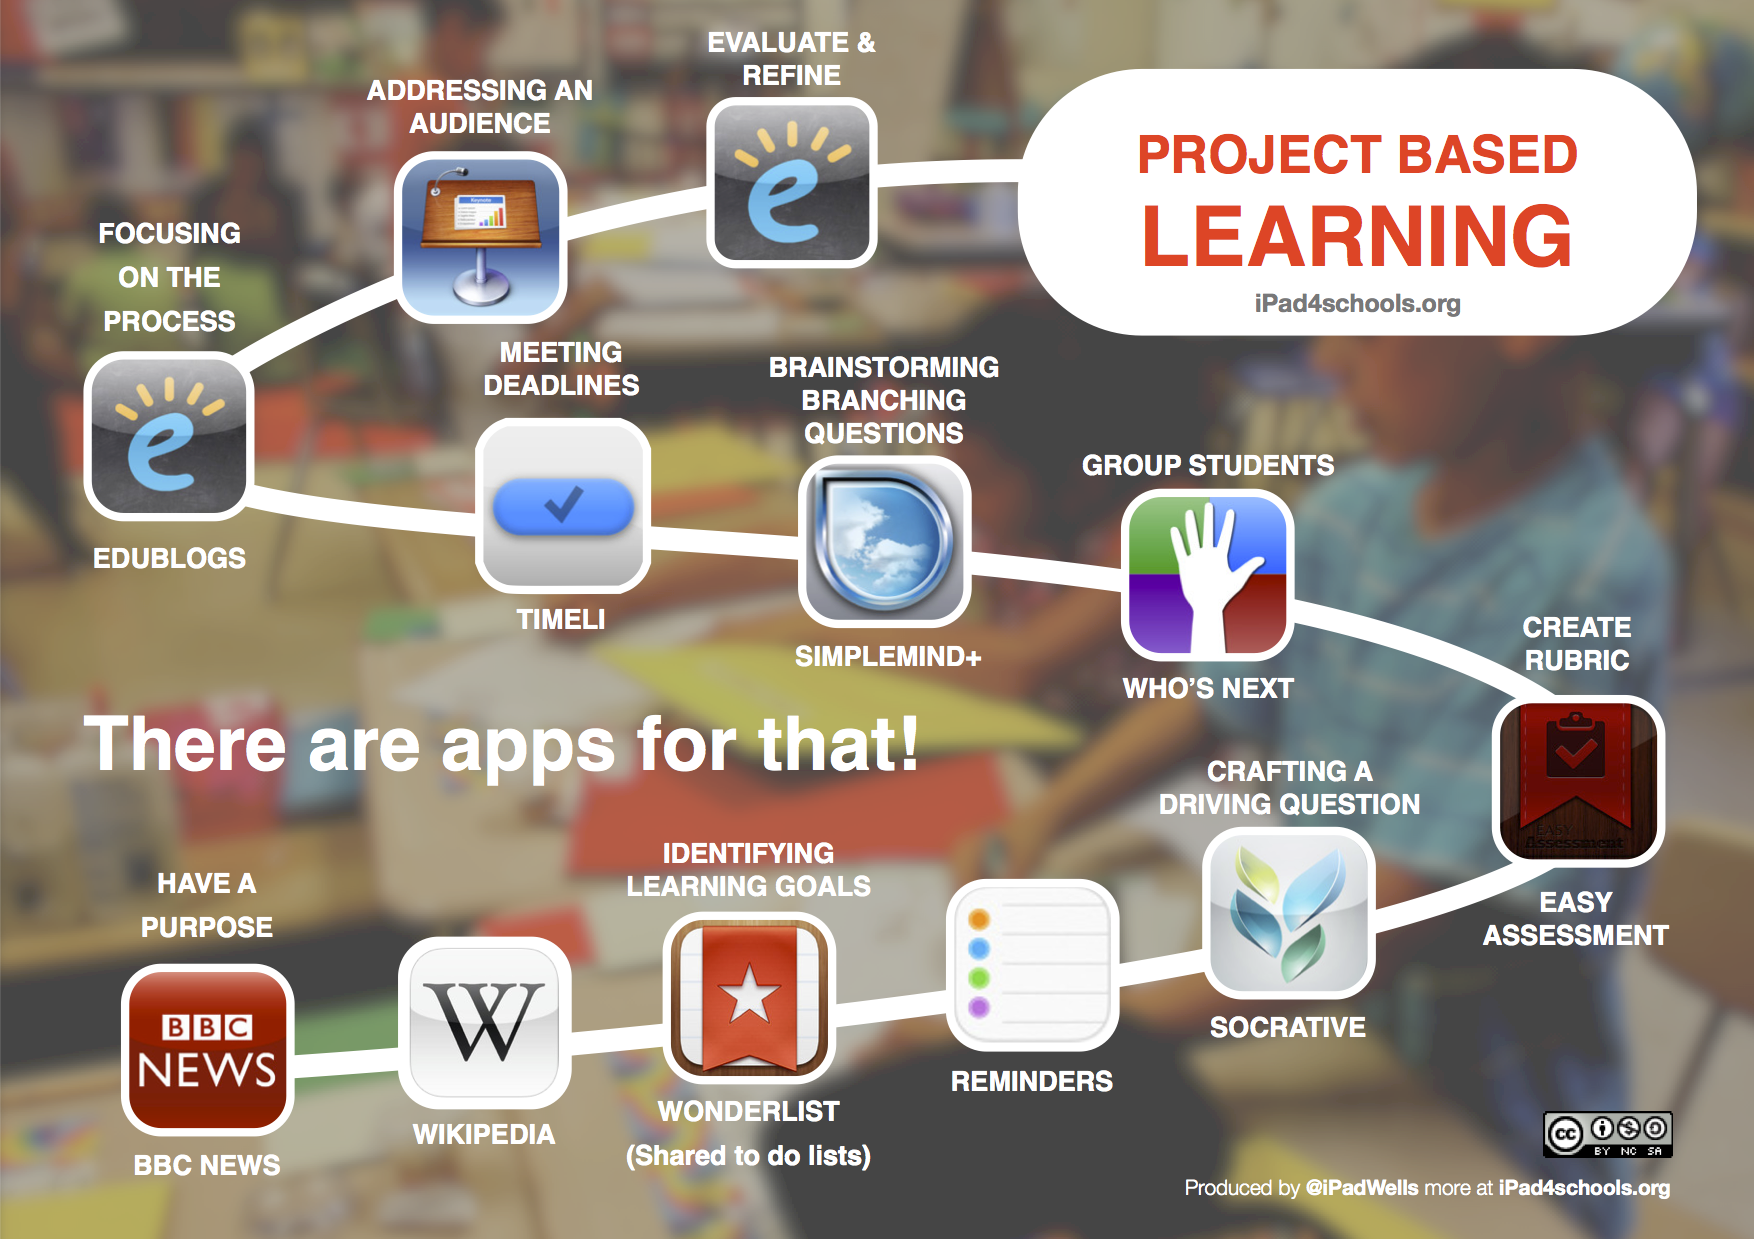 Project Based Learning with iPads